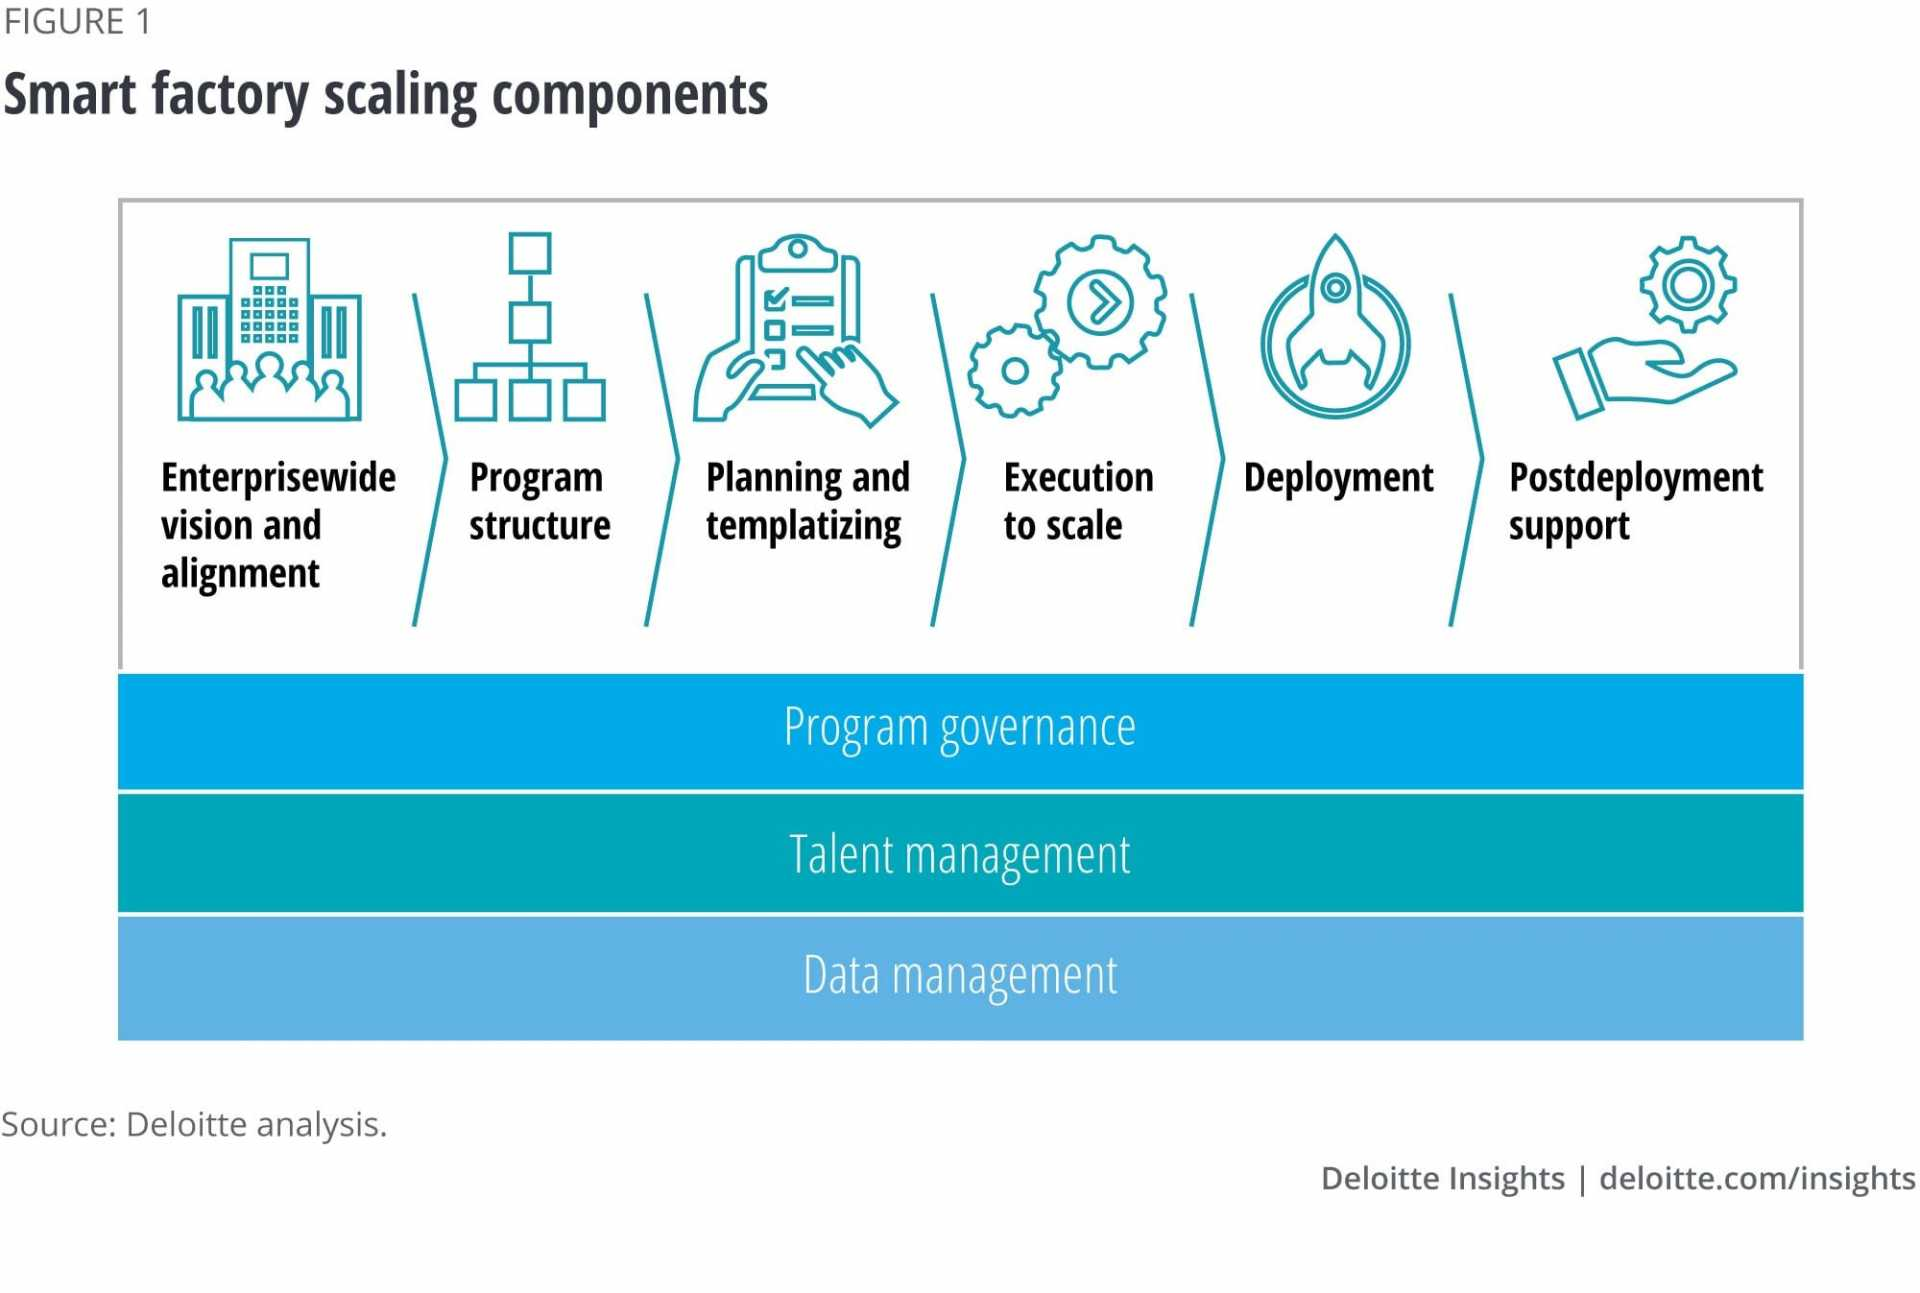 Smart Factory scaling components. Image: Deloitte Analysis